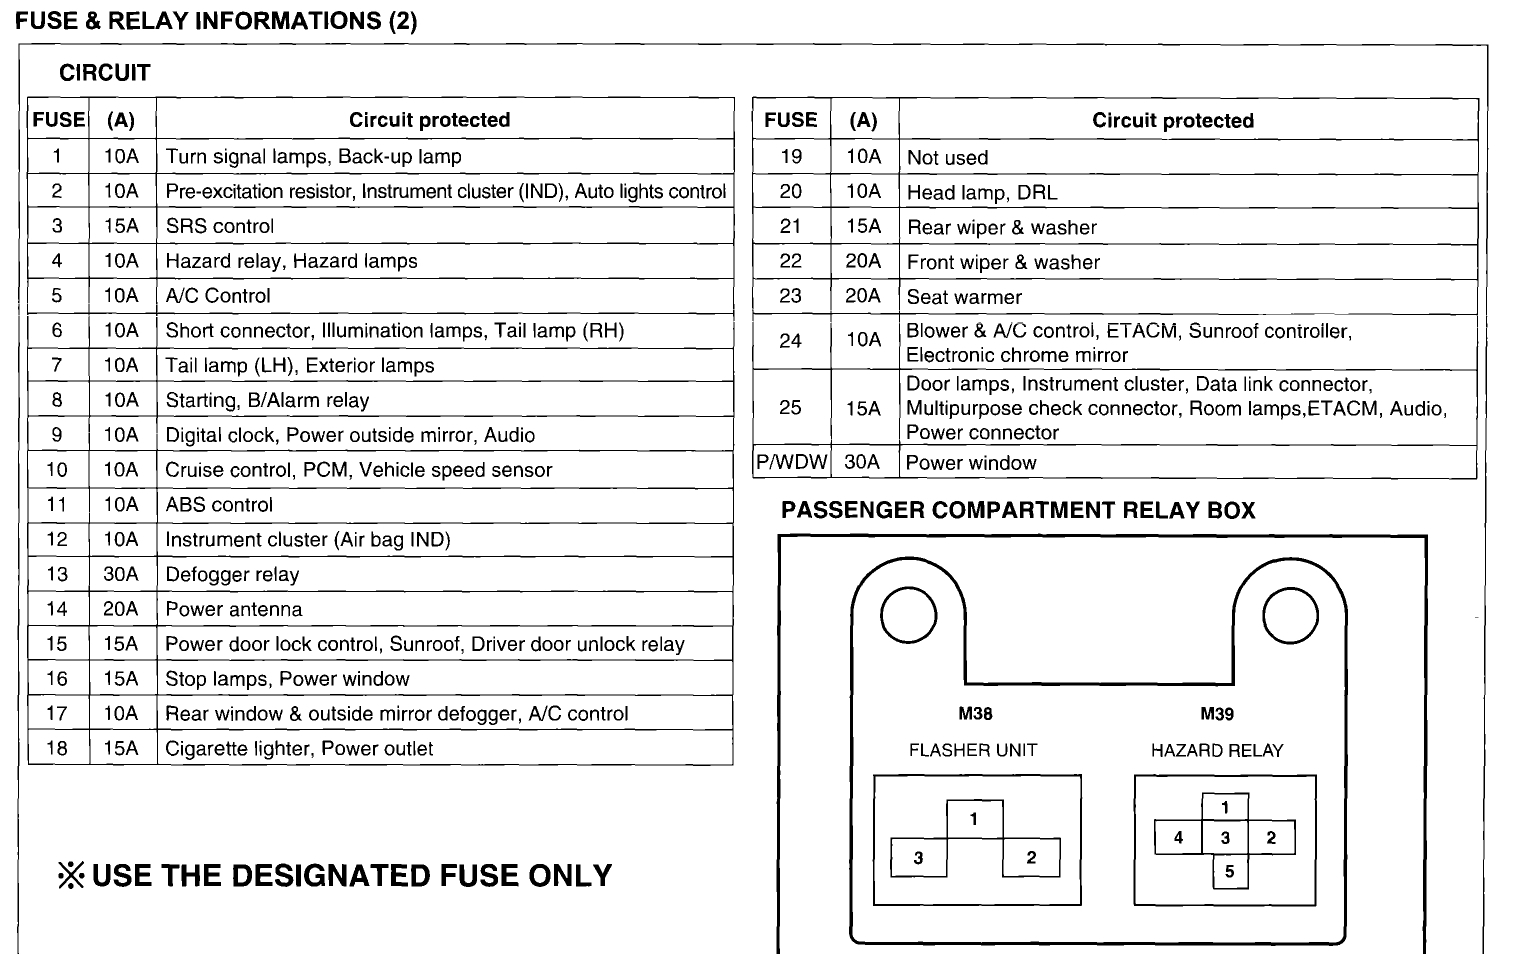 2002 Hyundai Elantra Fuse Diagram Wiring Library Stereo Chevy Box Location